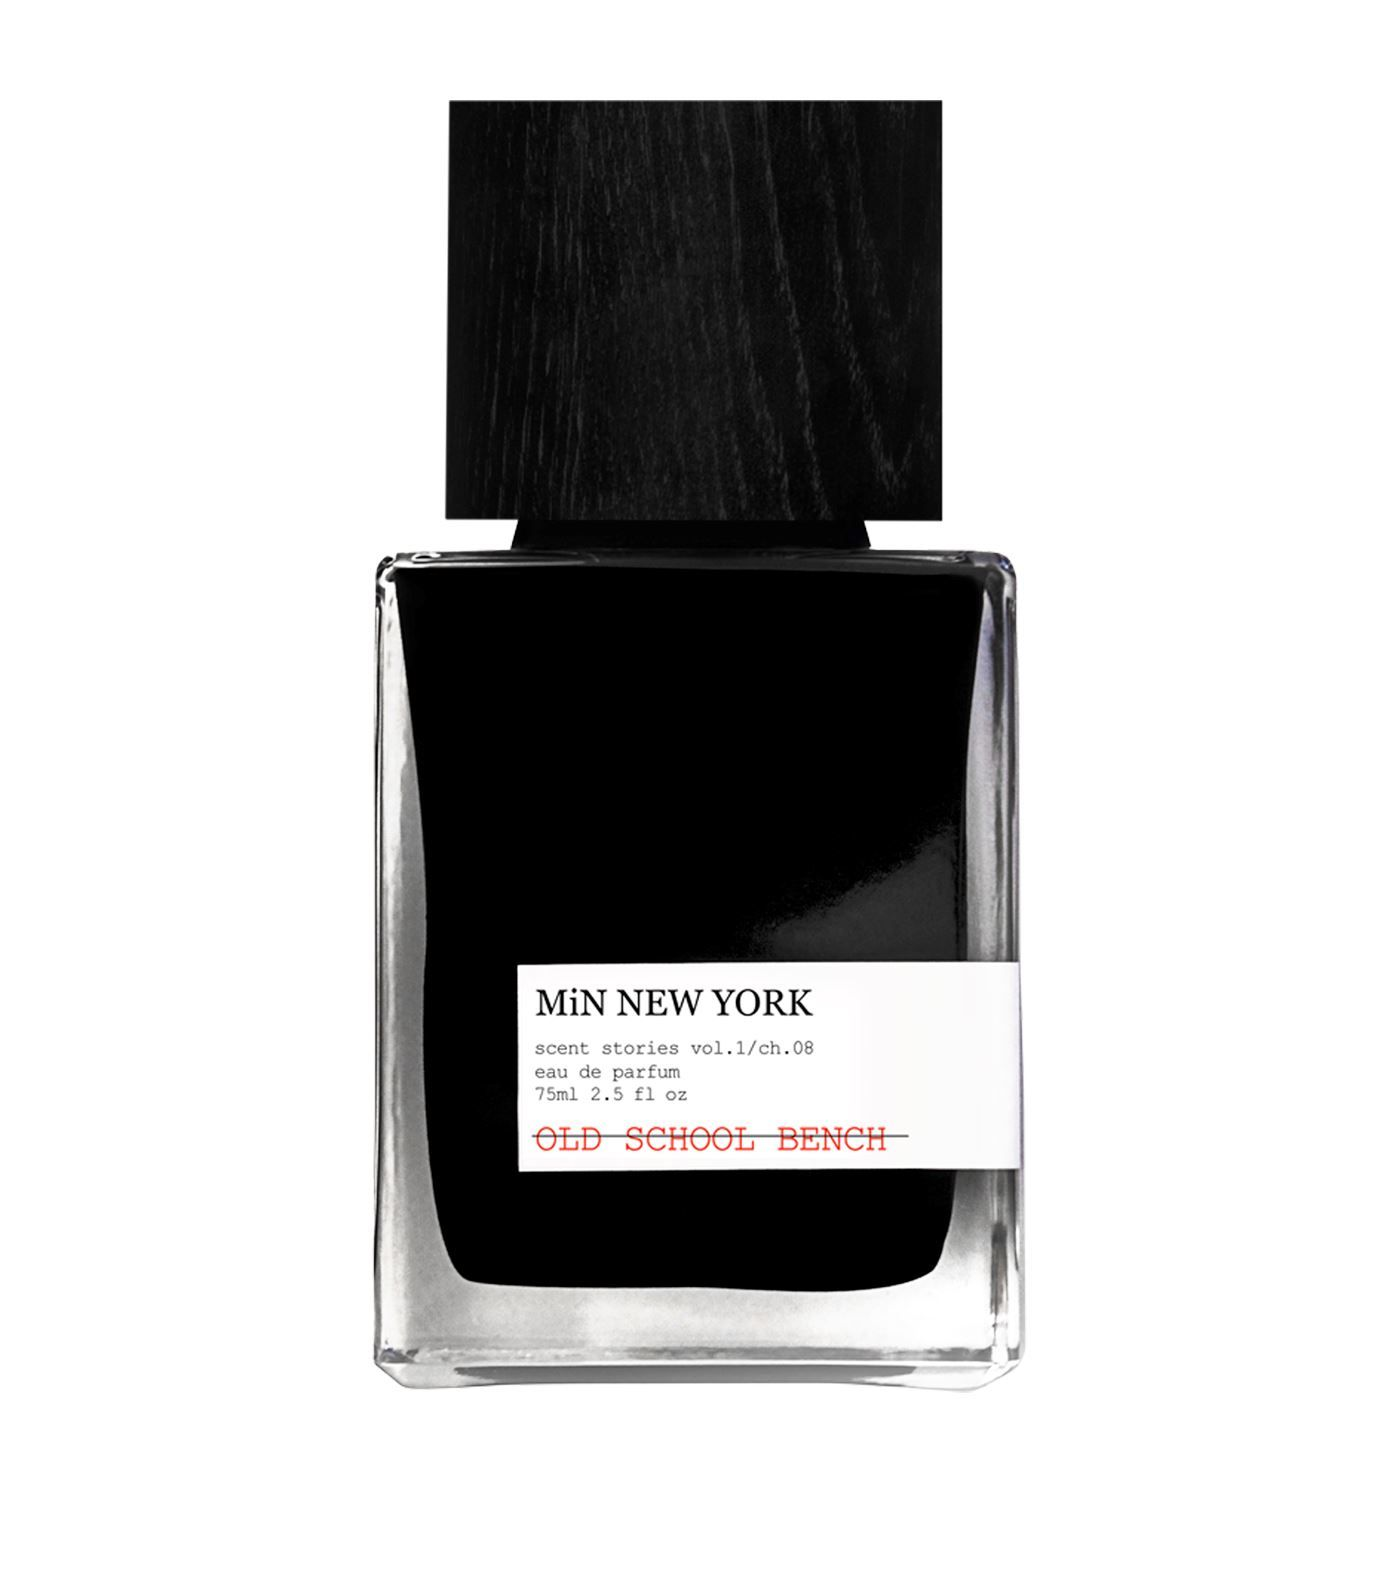 Min New York Old School Bench Eau De Parfum Ad Sponsored School York Min Bench Parfum Eau De Parfum Perfume Perfume Collection